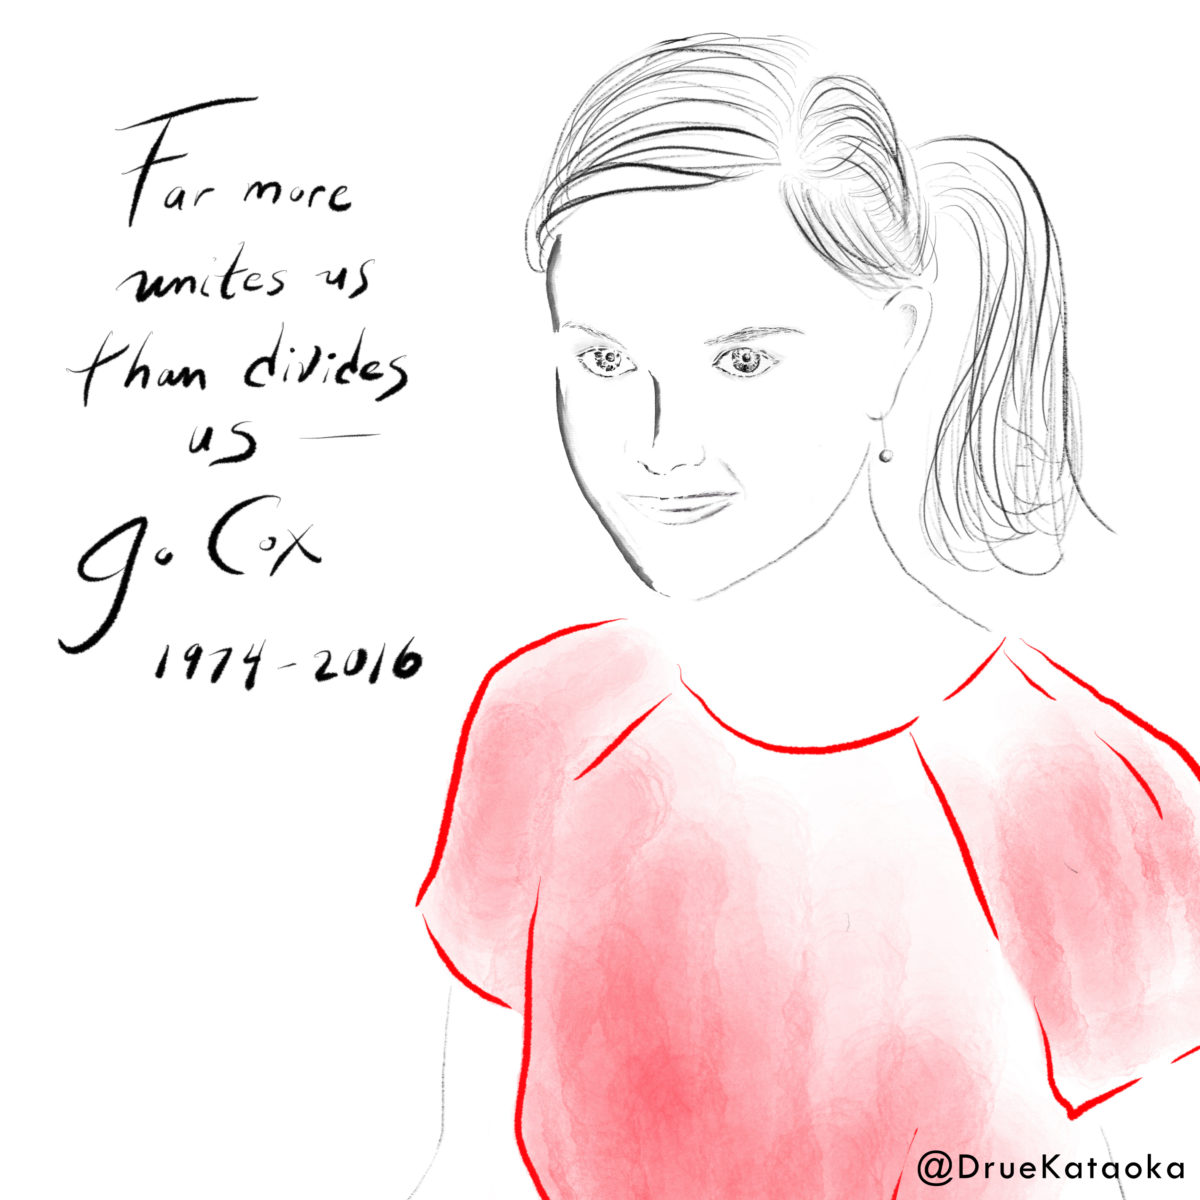 """A drawing of Jo Cox with the words, """"Far more unites us than divides us"""" - Jo Cox 1974-2016."""